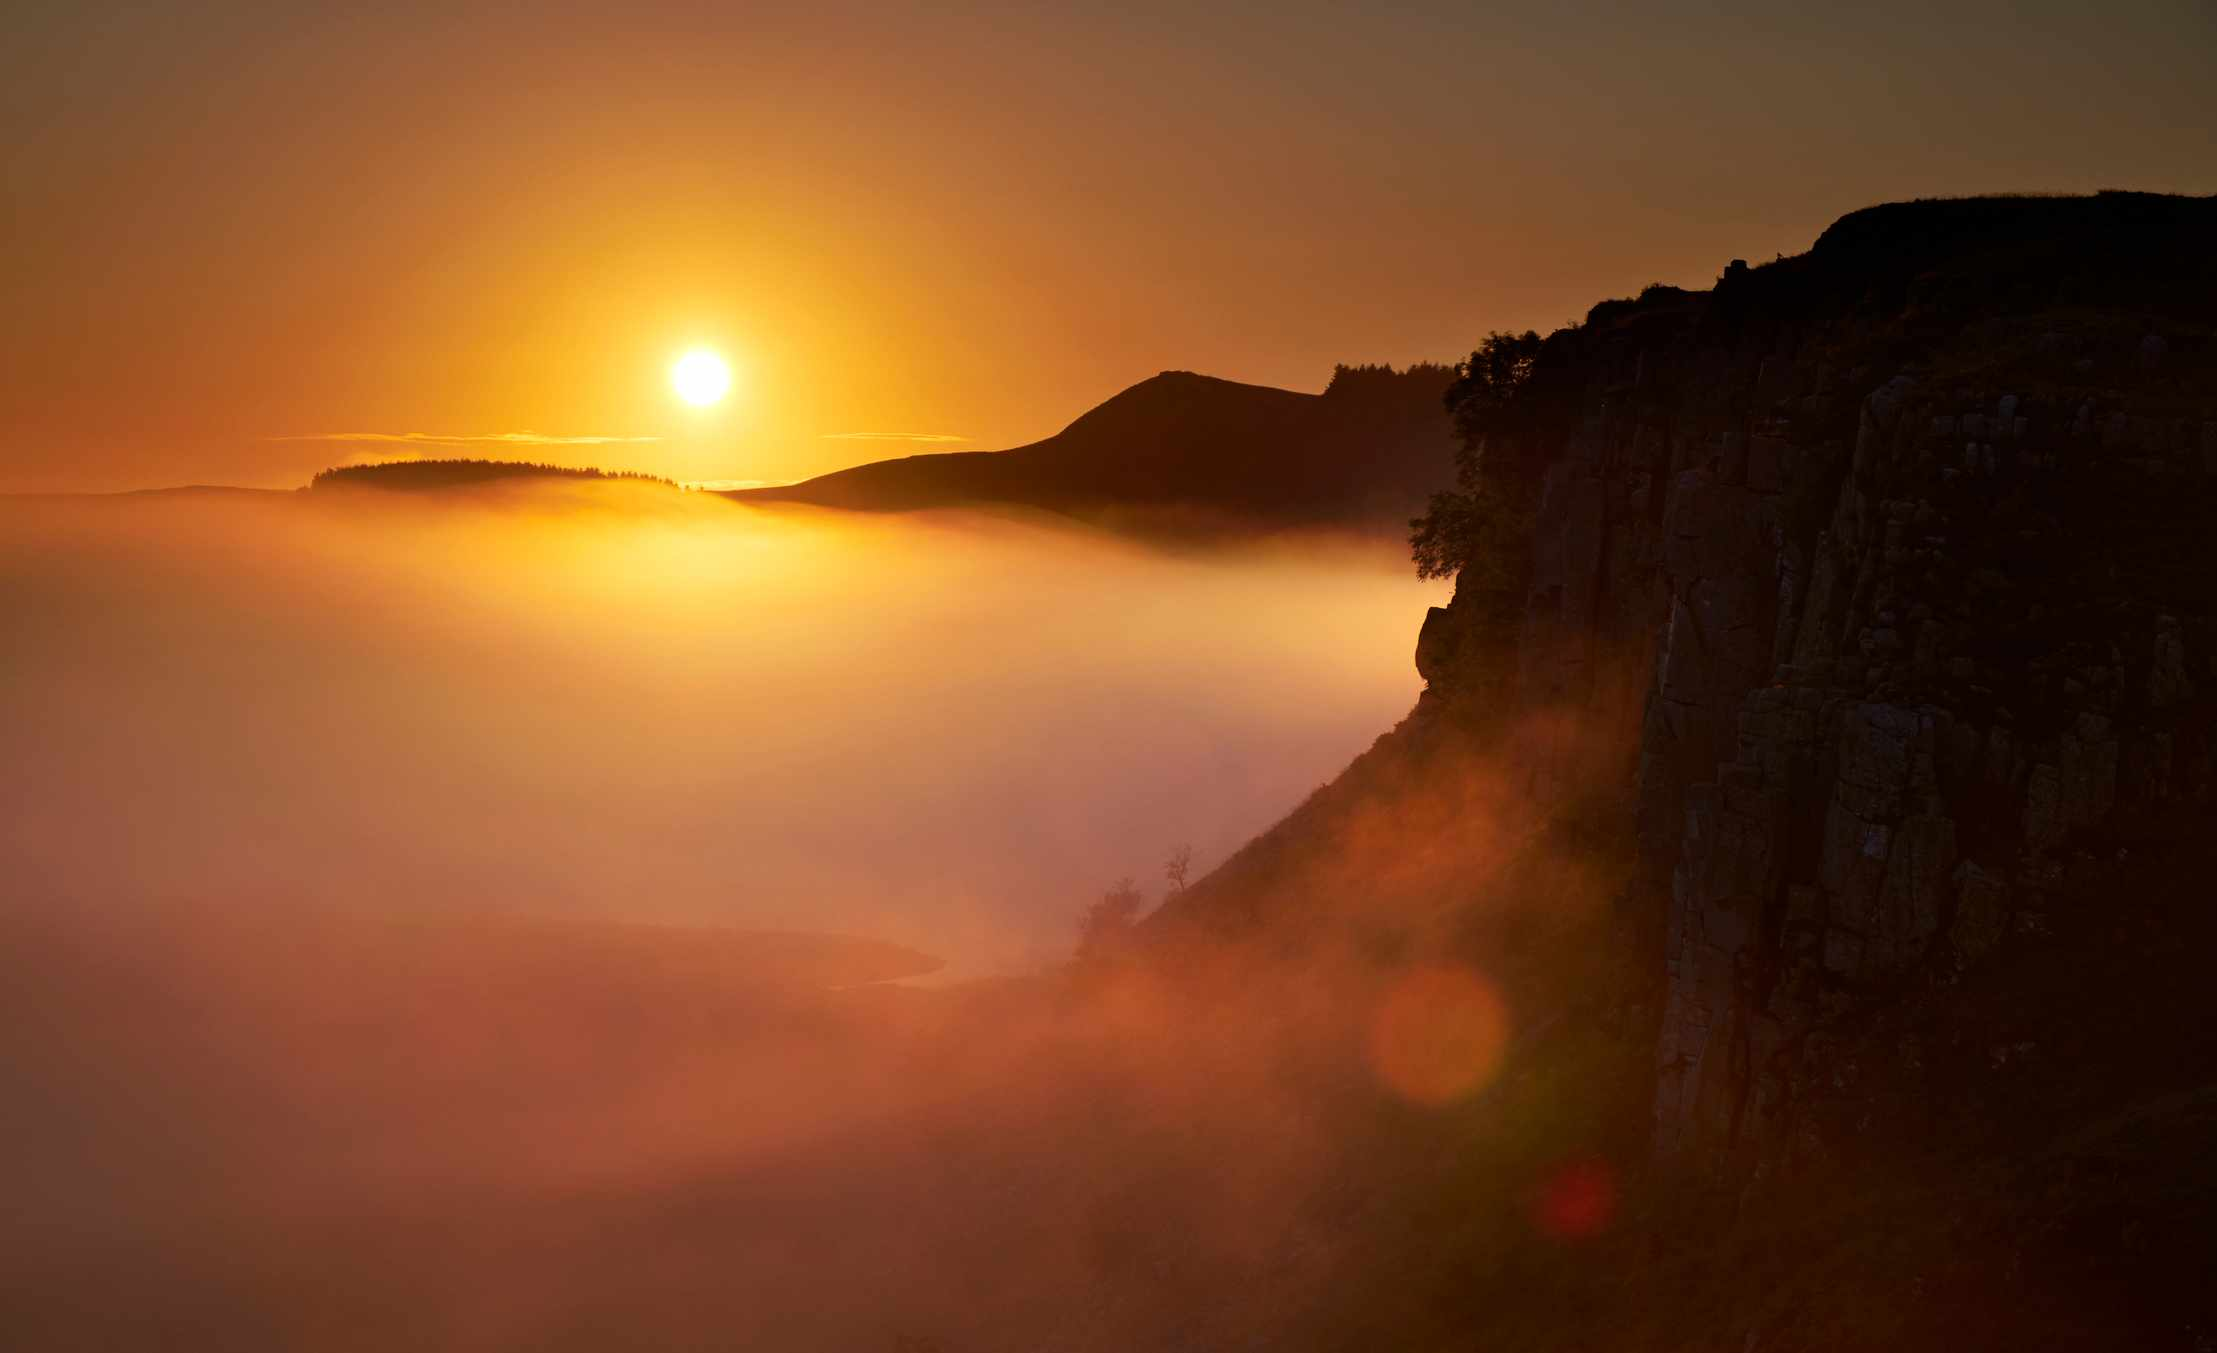 Dawn breaks over the still, misty waters of Crag Lough and Hadrian's Wall in Northumberland, at the very north of England. The ancient Roman fortified wall runs between England and the wild lands to the north, though much of the scenery at this early hour is shrouded in mist.